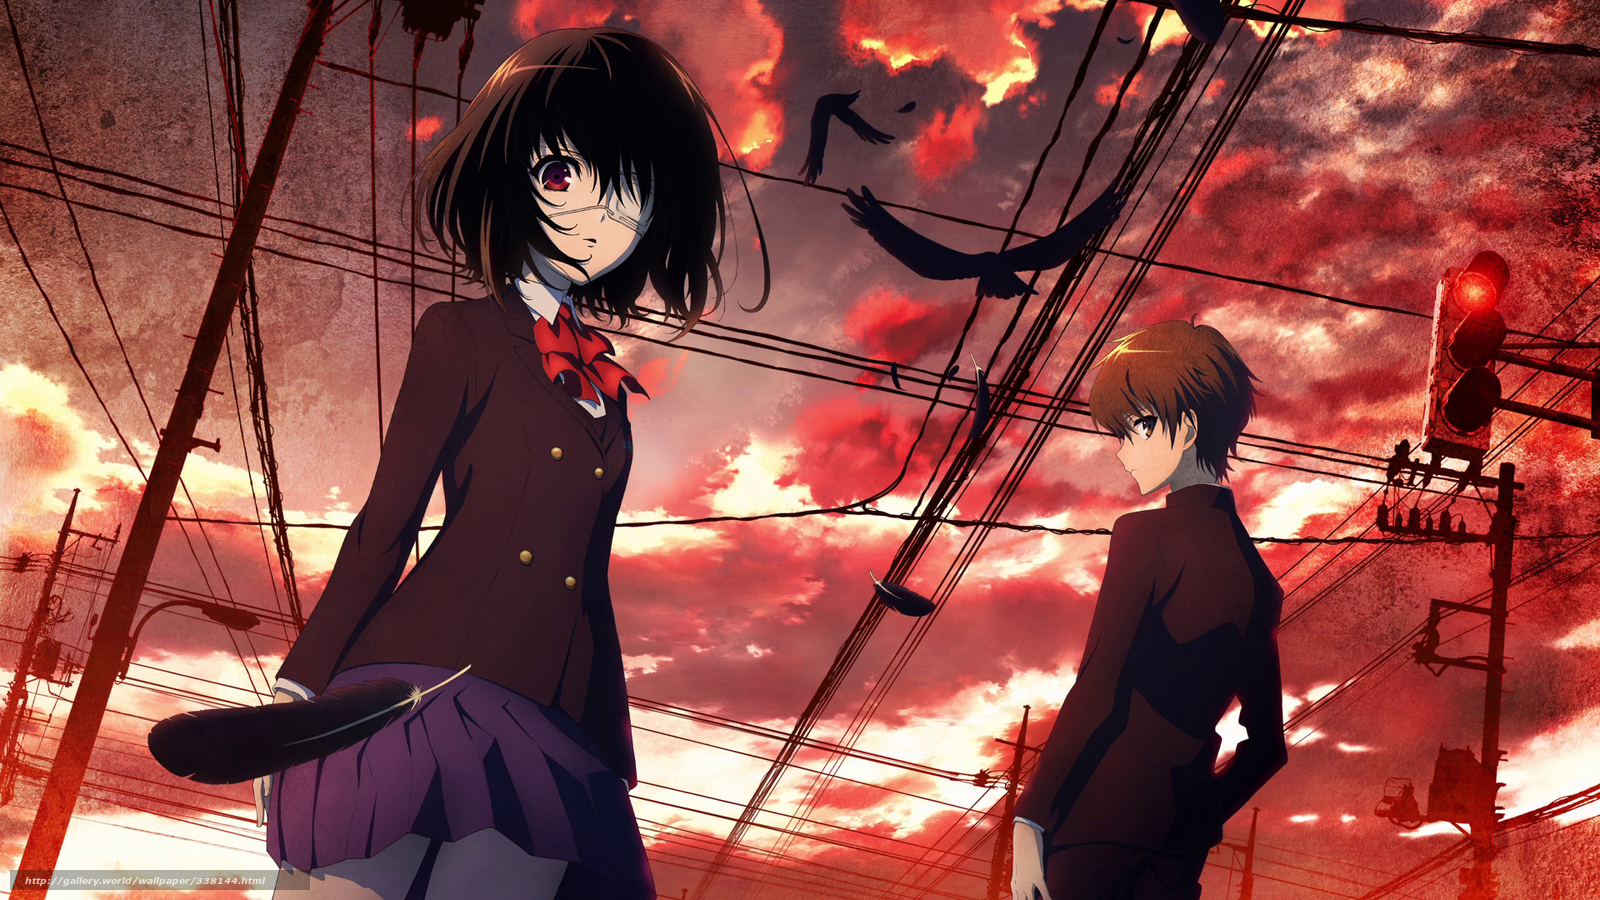 http://st.gdefon.ru/wallpapers_original/wallpapers/338144_another_misaki-mei_inaya_1920x1080_(www.GdeFon.ru).jpg